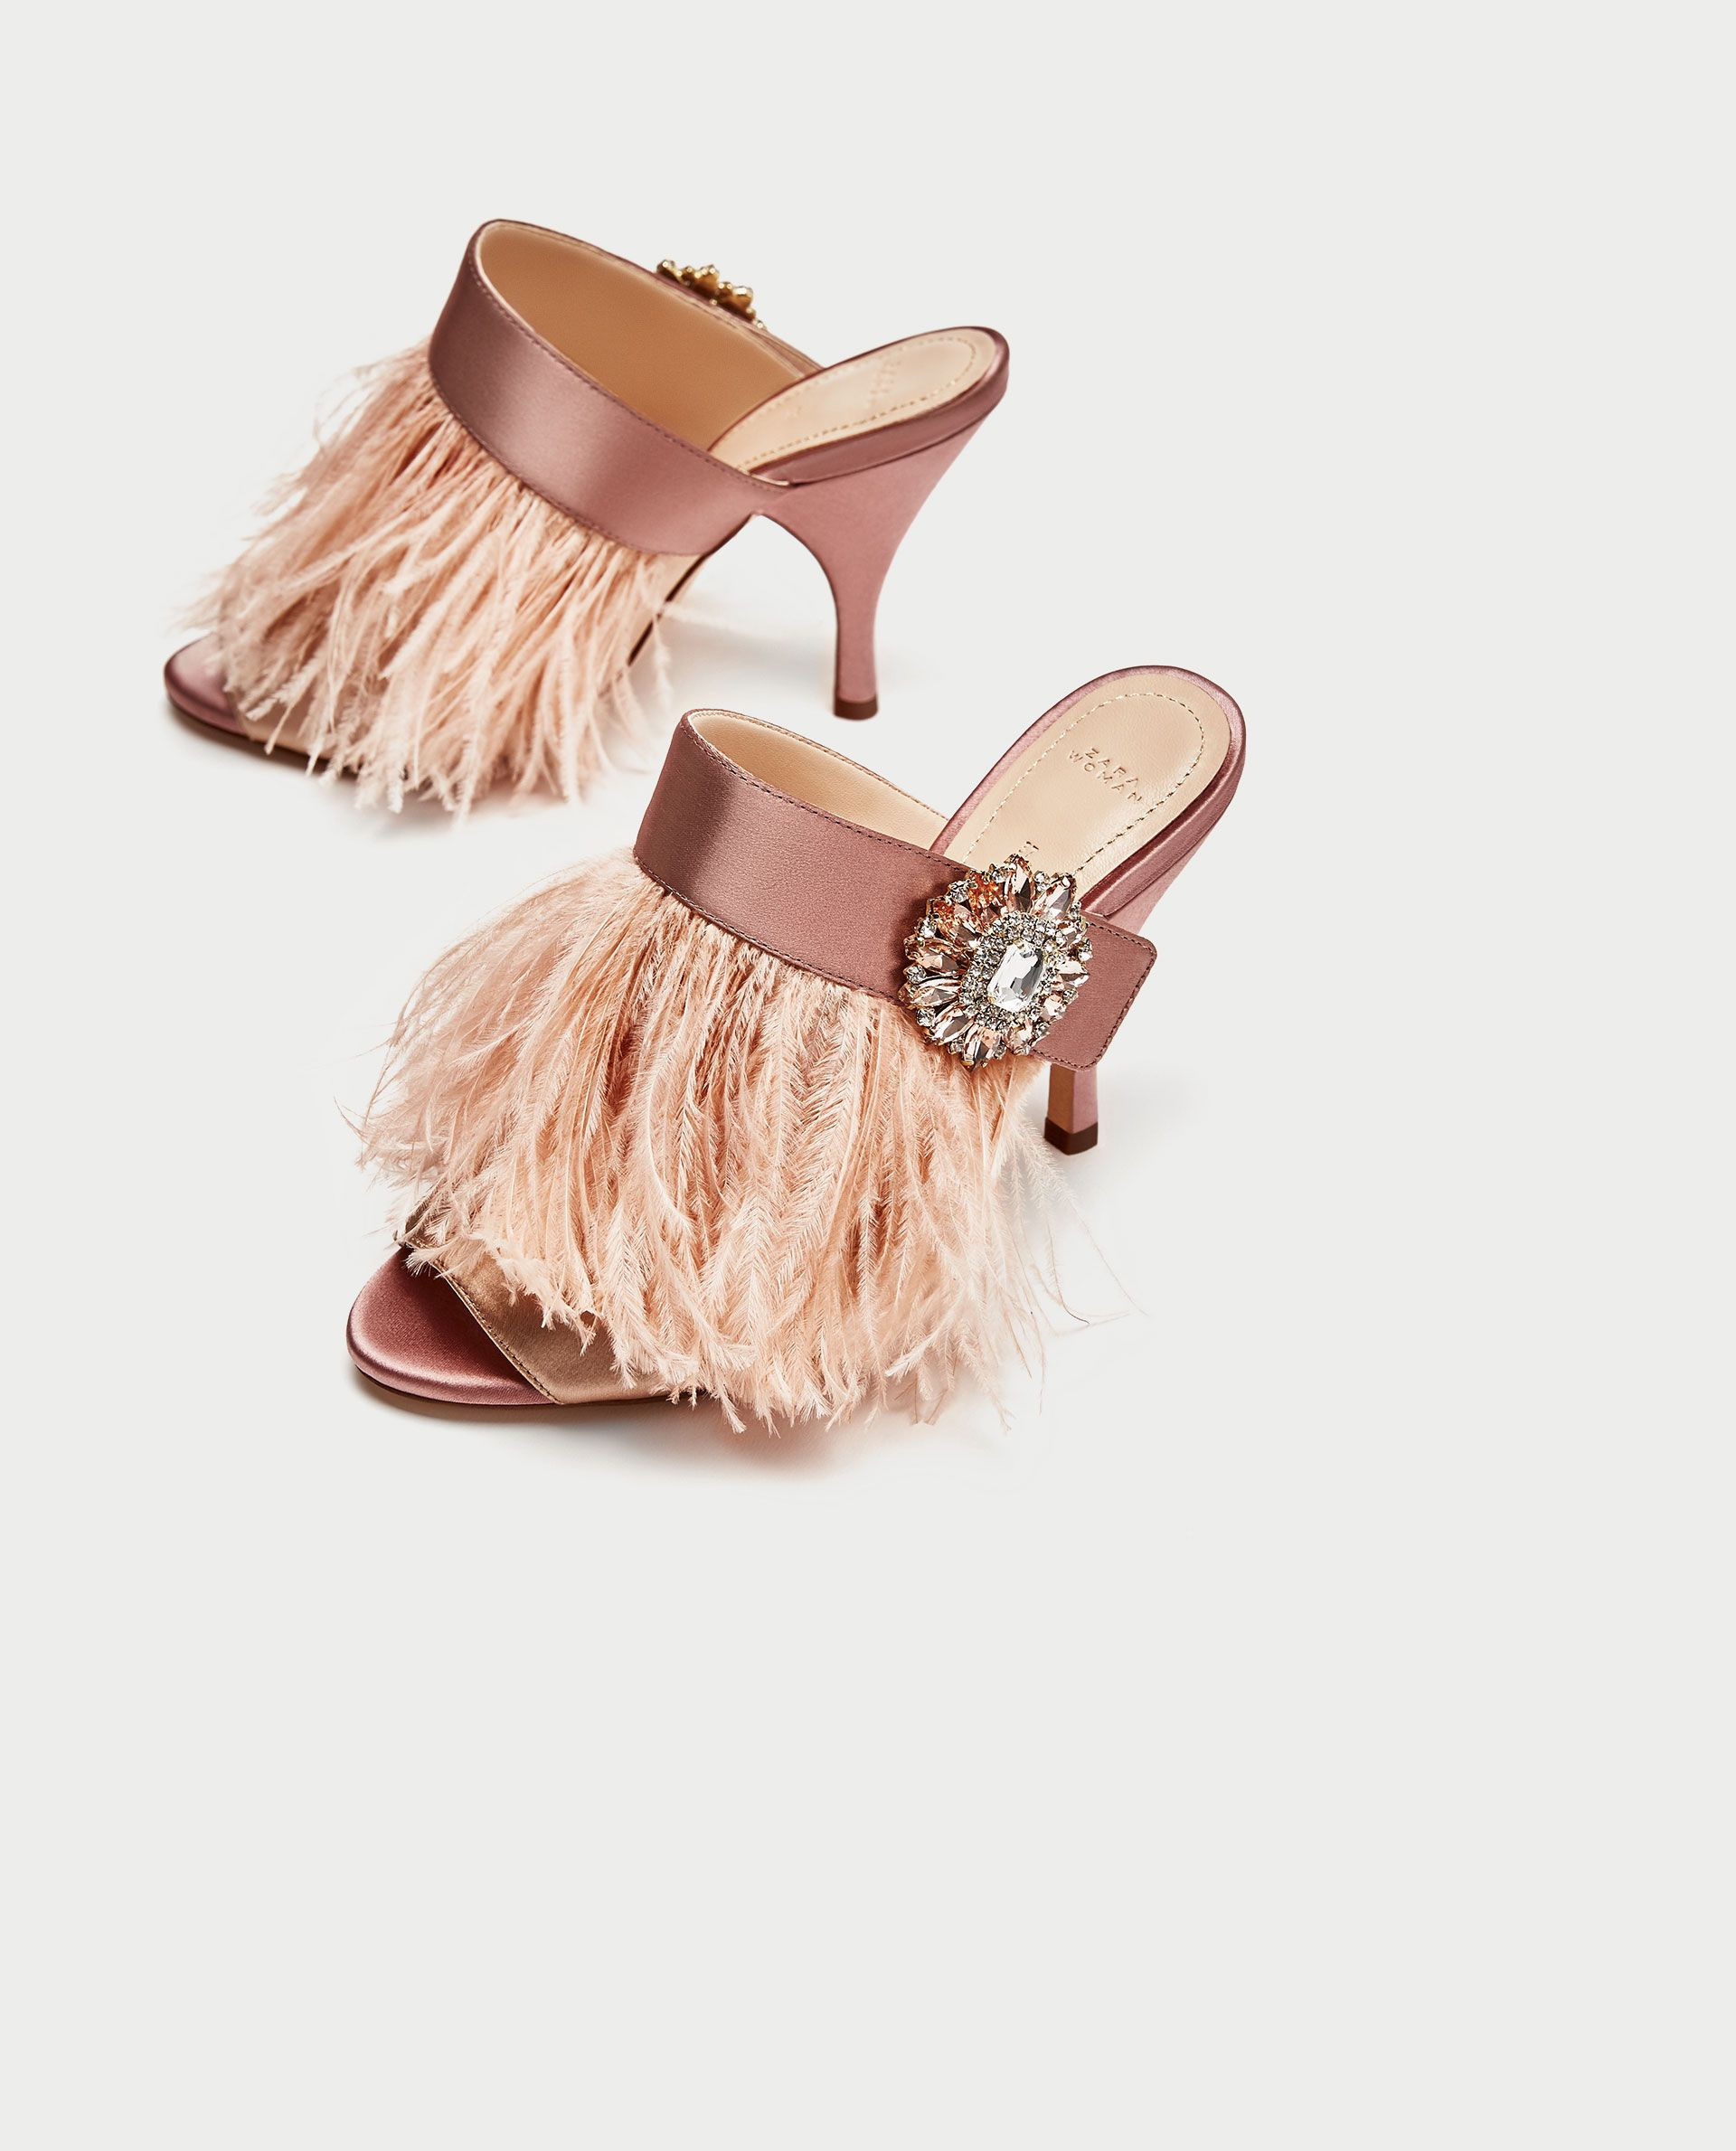 ef518327d0d HIGH HEEL MULES WITH FEATHER AND BROOCH DETAIL from Zara    under  100